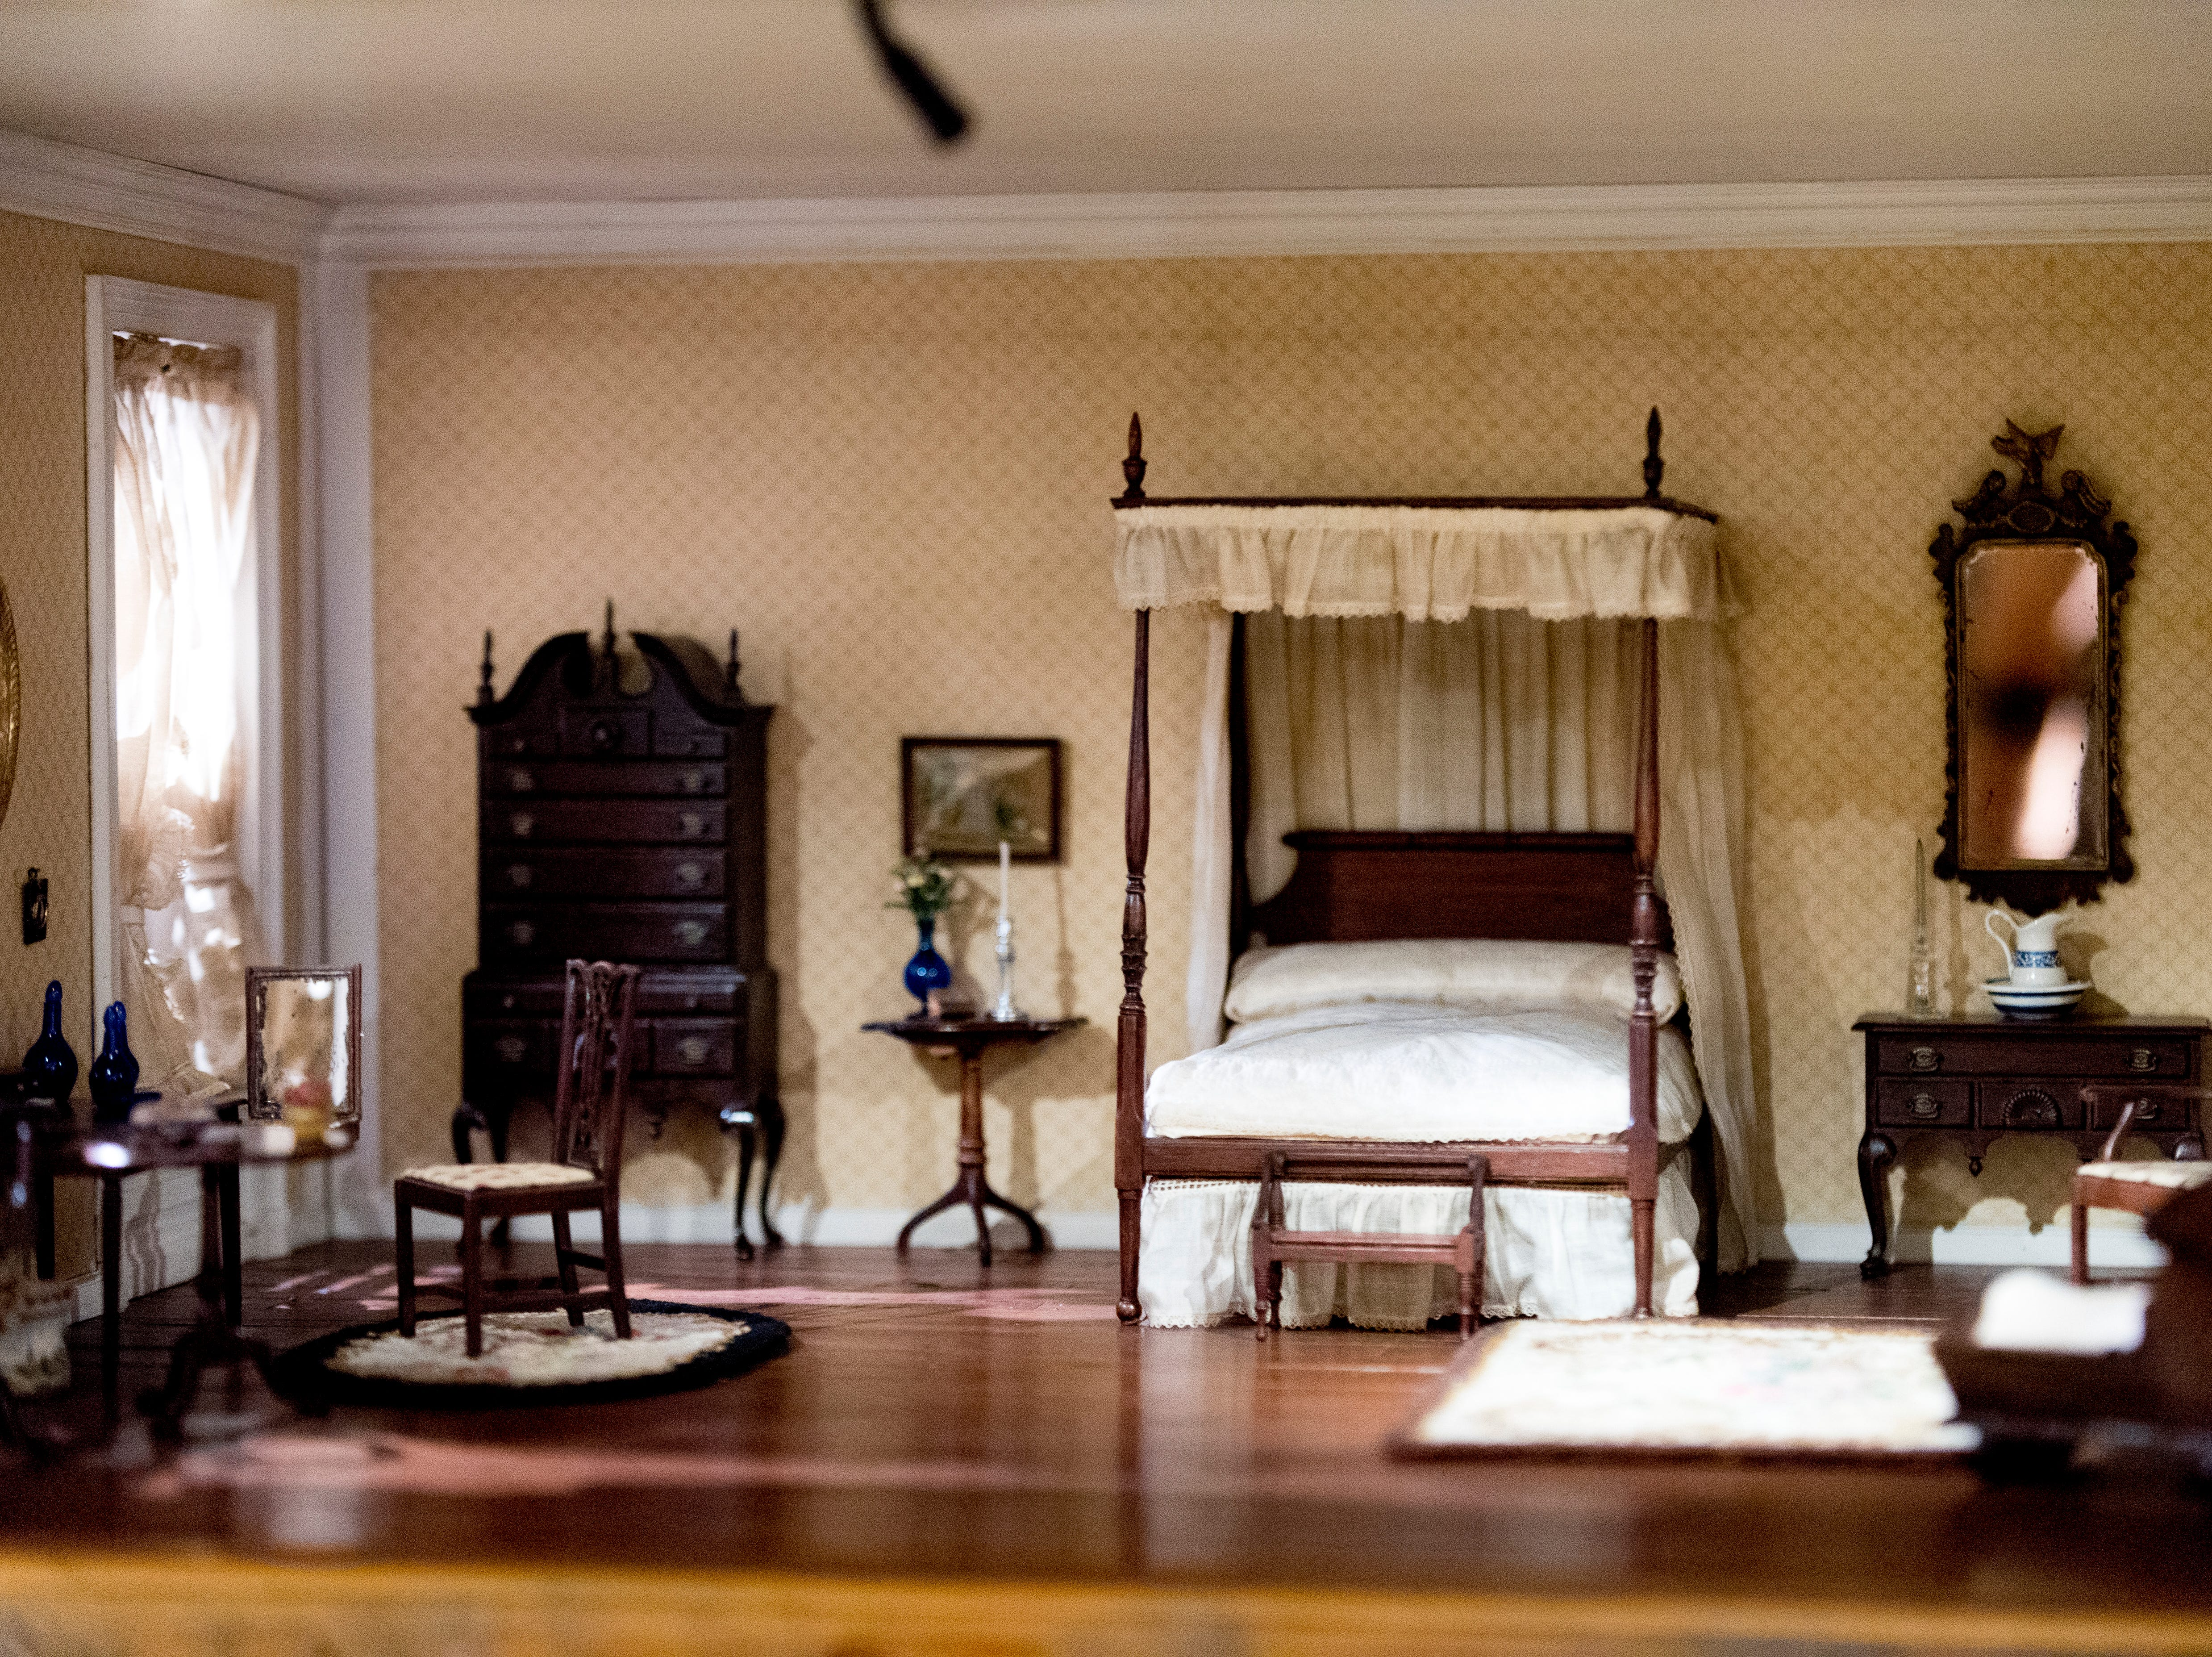 A view inside the New England bedroom circa 1770 in the Thorne Room at the Knoxville Museum of Art in Knoxville, Tennessee on Tuesday, August 21, 2018. The nine miniature rooms were created in the 1930s and 40s by Mrs. James Ward Thorne to a scale of one inch to one foot.